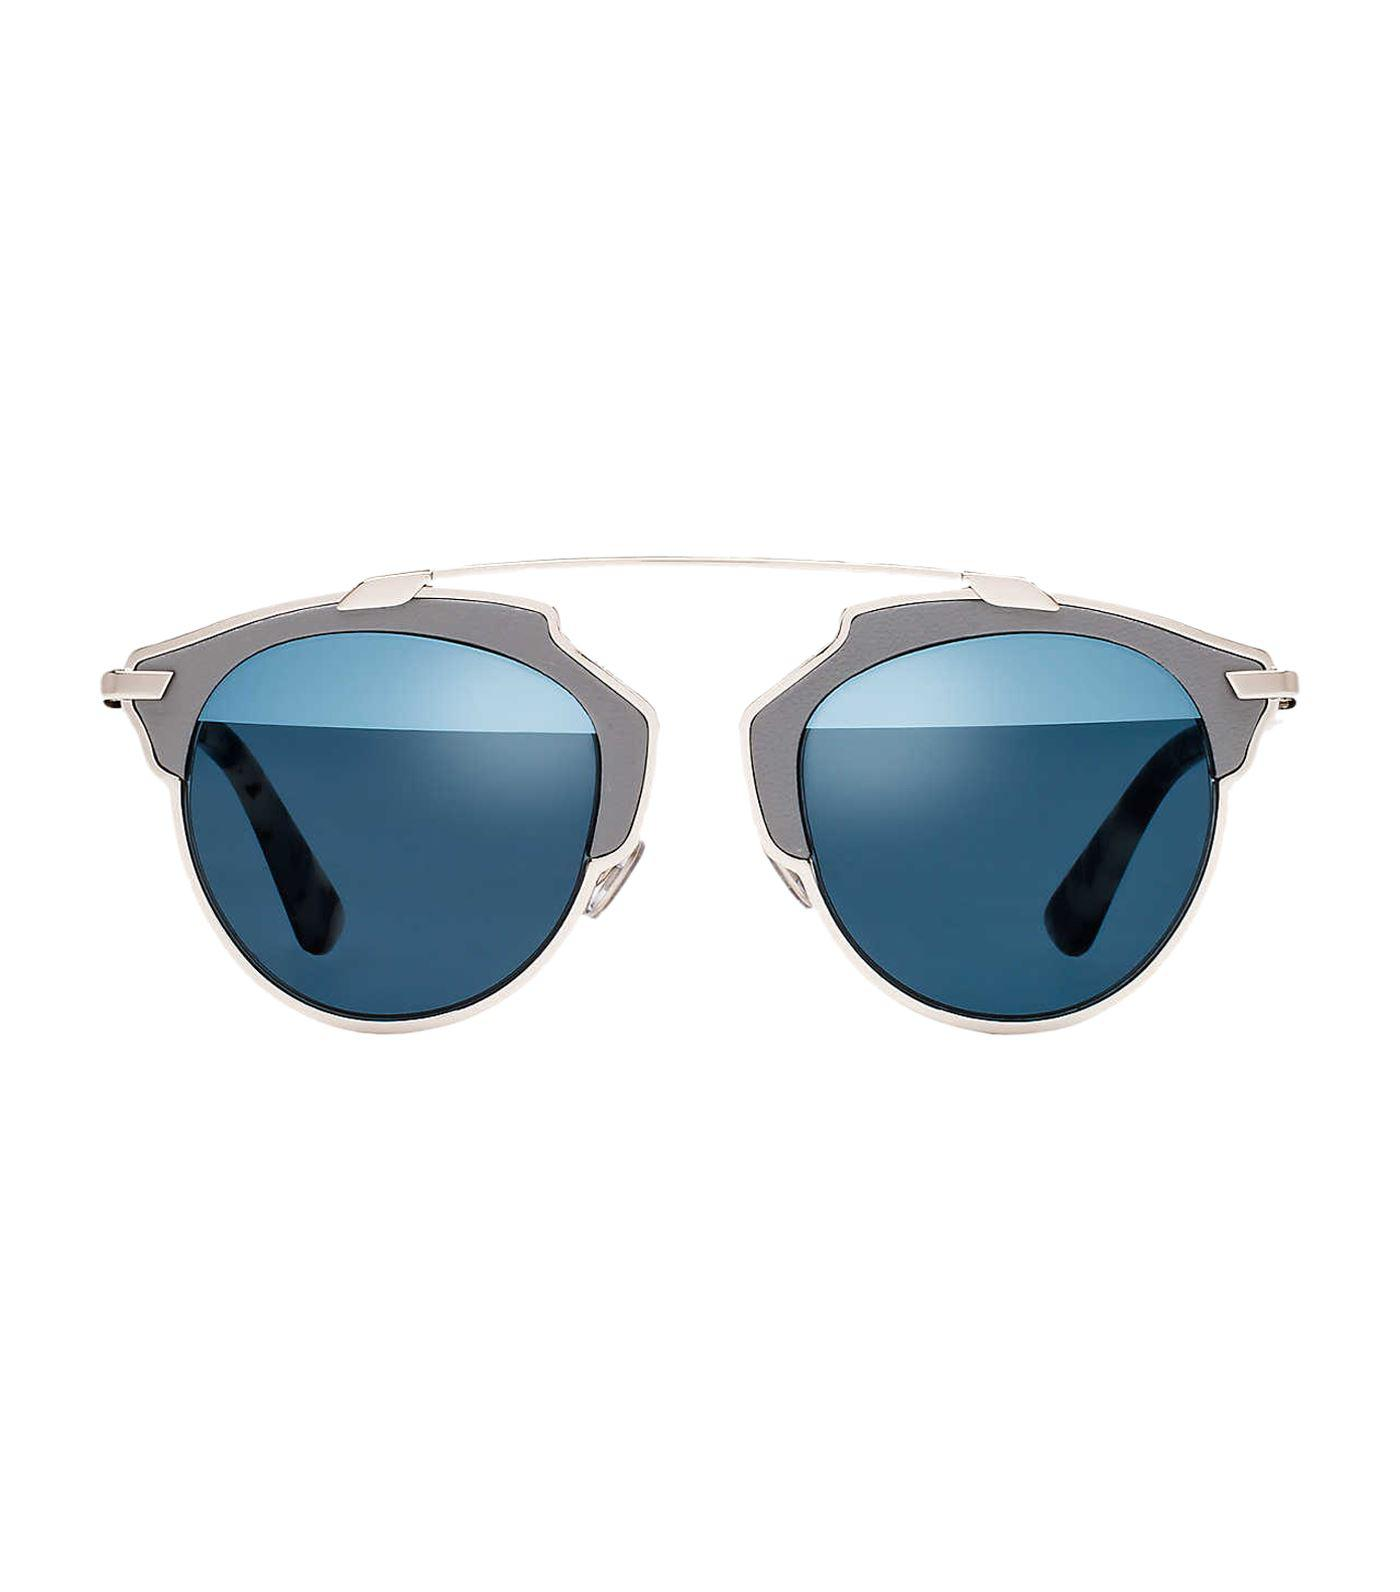 d47d17fdfbc Lyst - Dior So Real Sunglasses in Gray